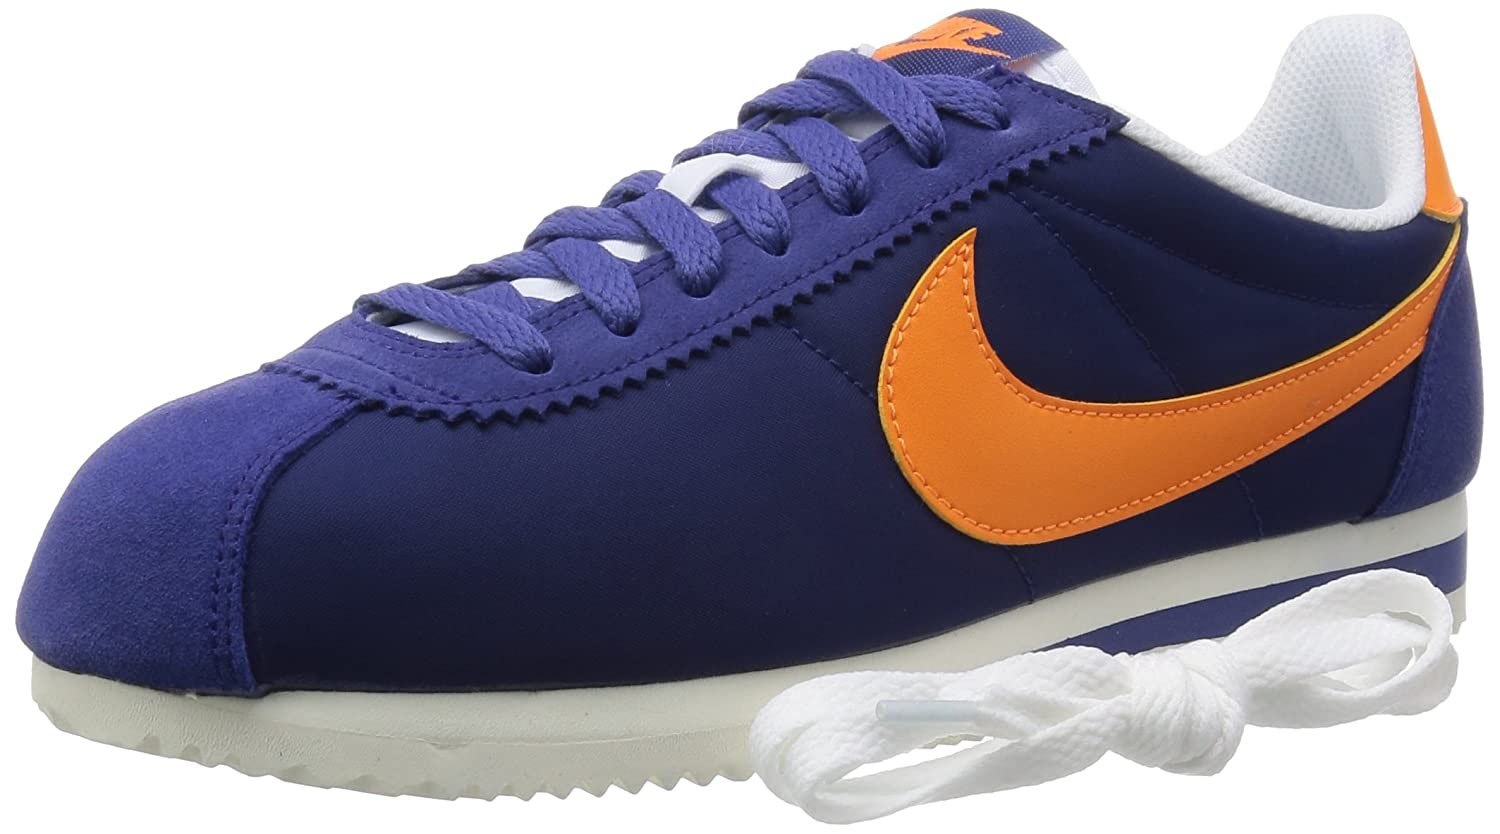 cheap for discount 9a526 bf89c Nike Classic Cortez Nylon, Men s Sneakers